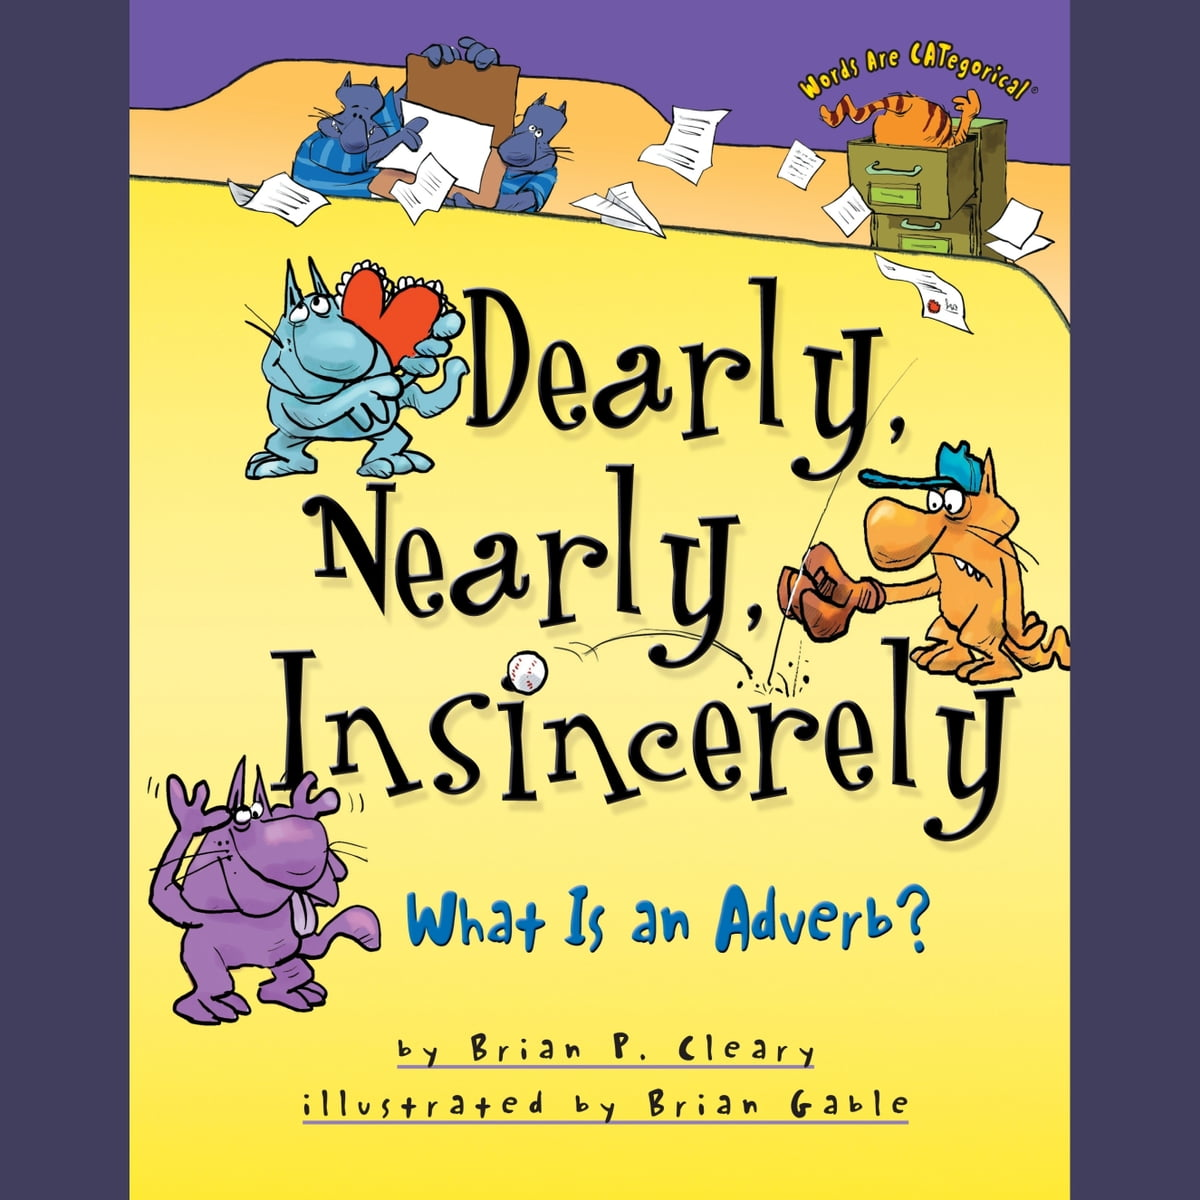 Lazily, Crazily, Just a Bit Nasally: More About Adverbs (Words Are Categorical)